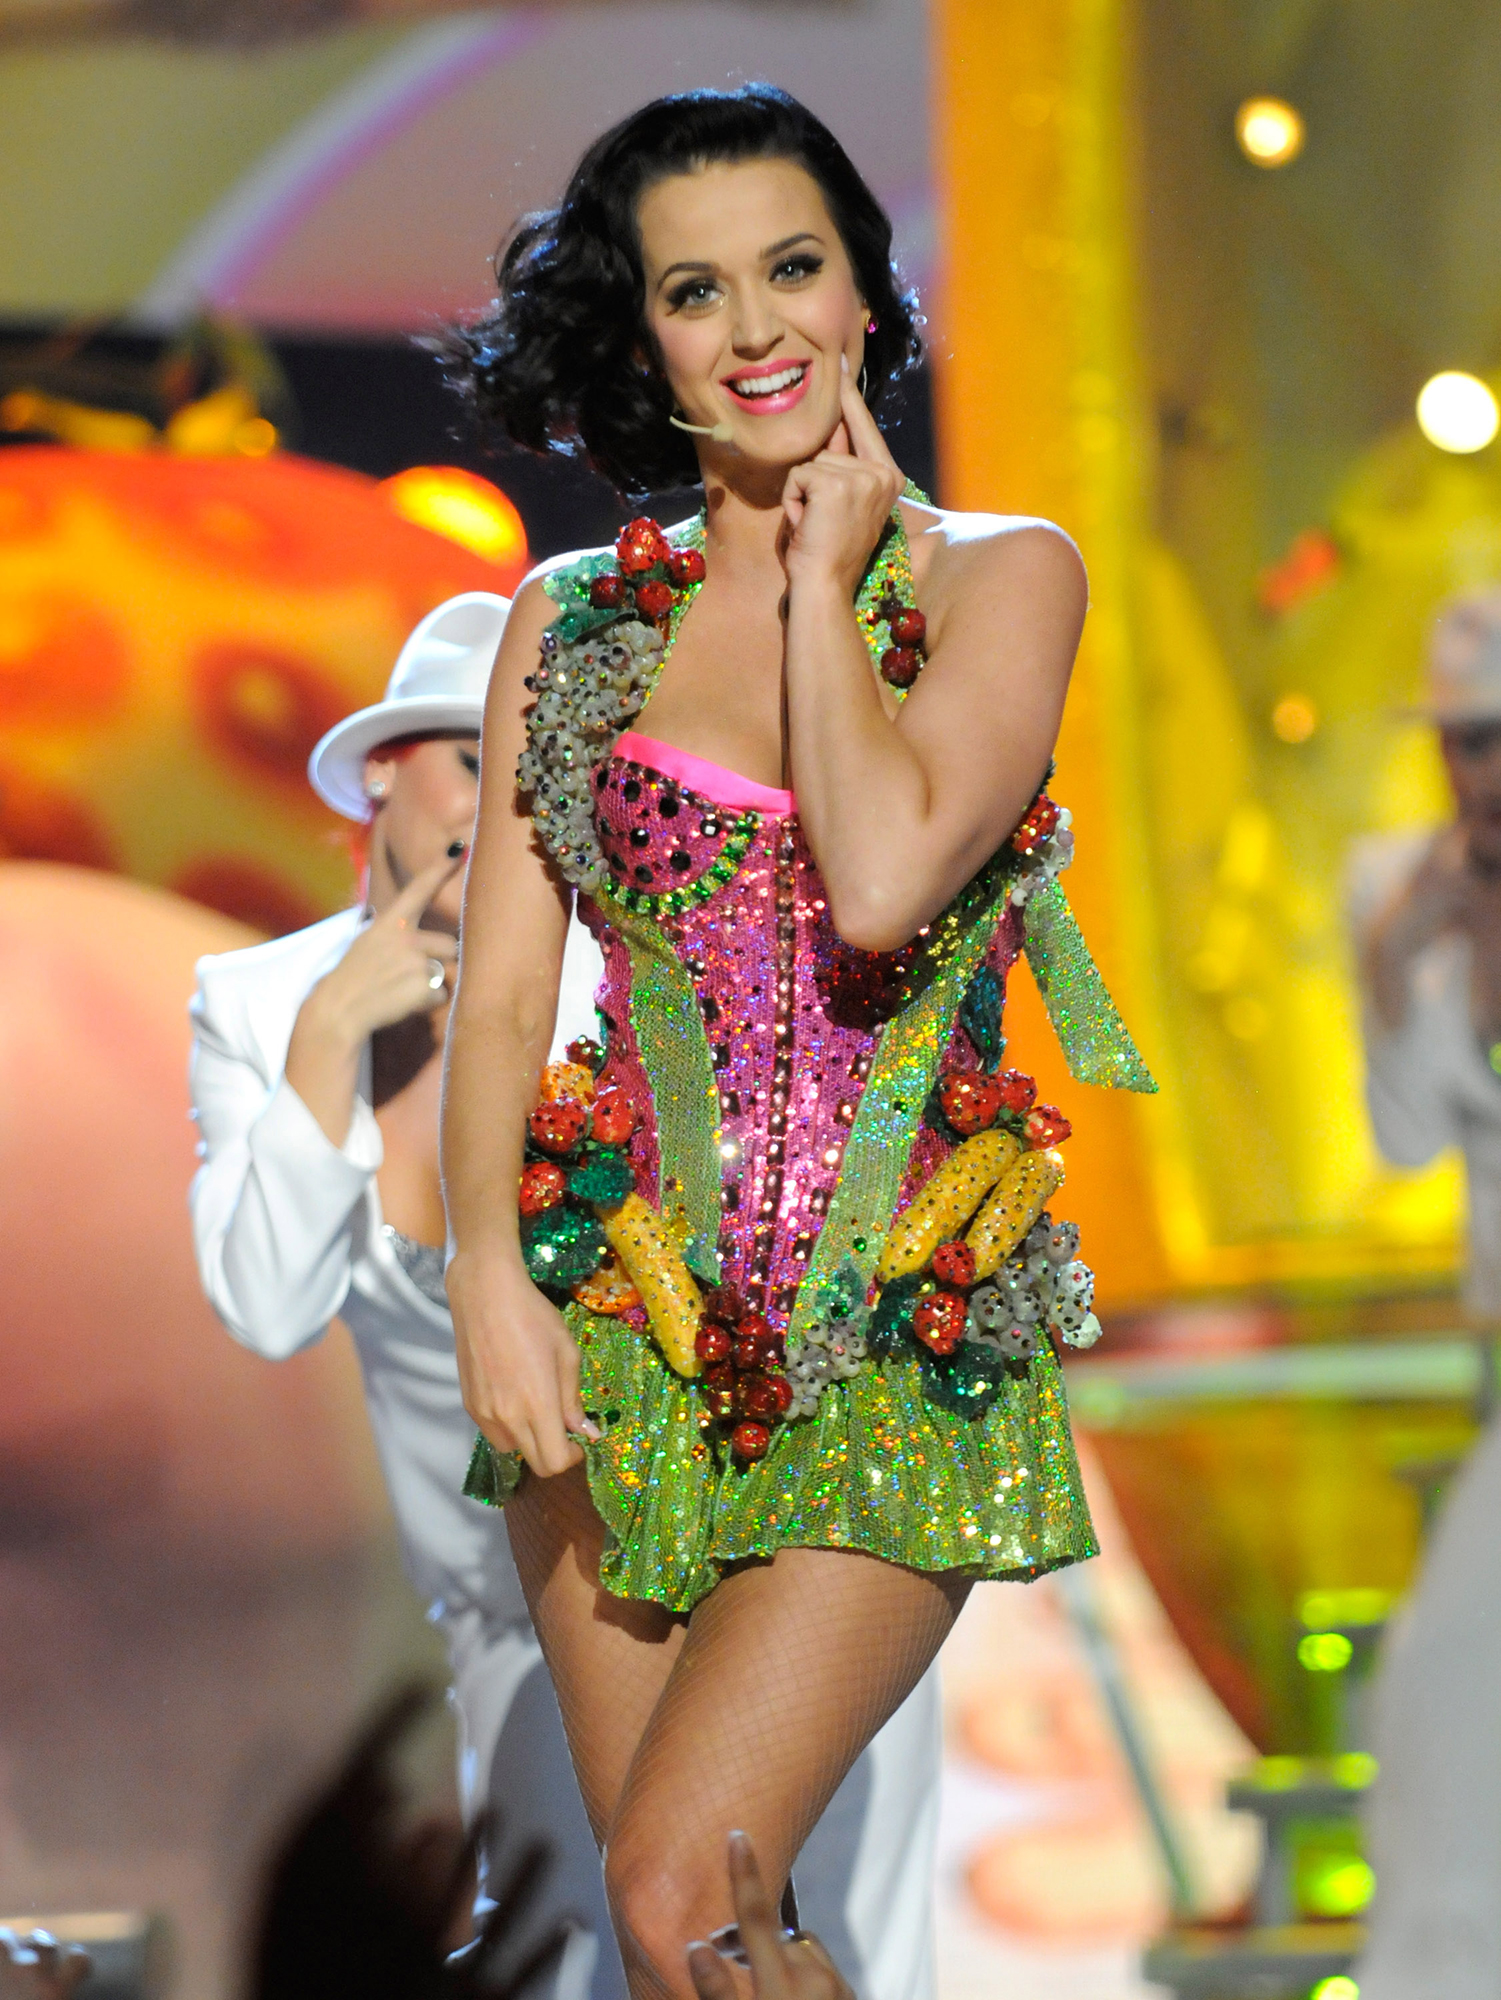 Katy Perry Dressed as Food - Perry took her affinity for fruit to the next level in February 2009 when she performed at the 51st Annual Grammy Awards in Los Angeles wearing an outfit that featured bedazzled bananas, watermelon pieces, cherries and more.